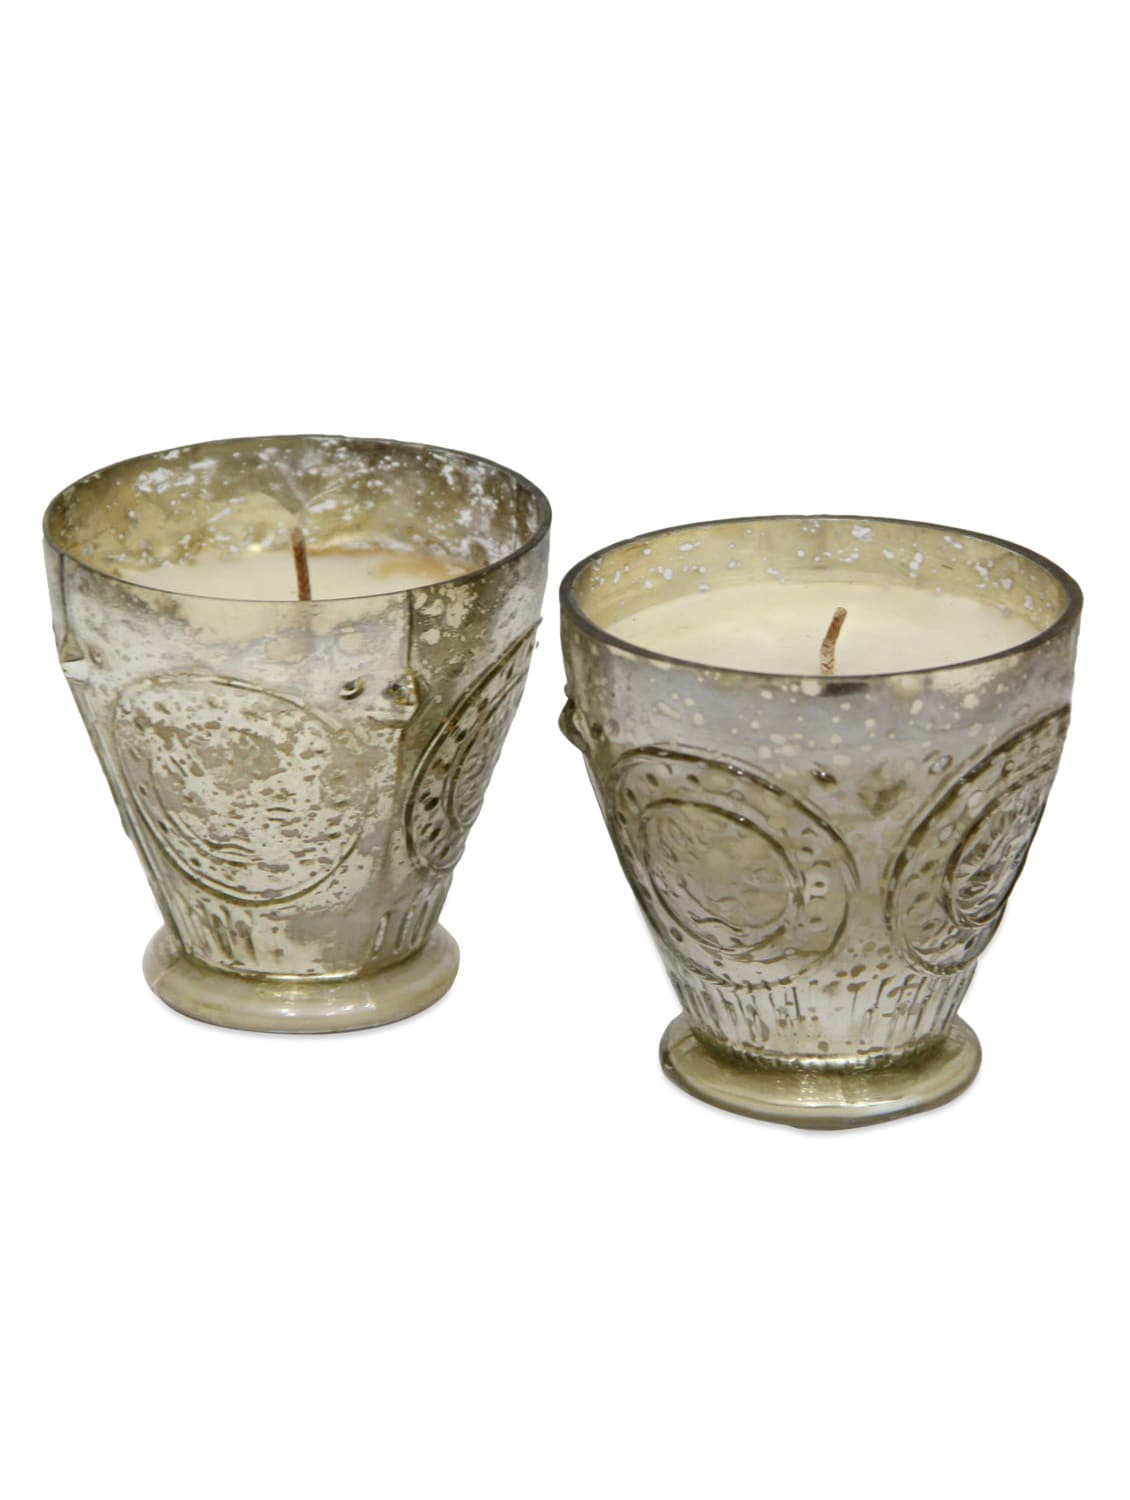 Antique Glass Candle Glass Votives - Gifts By Meeta